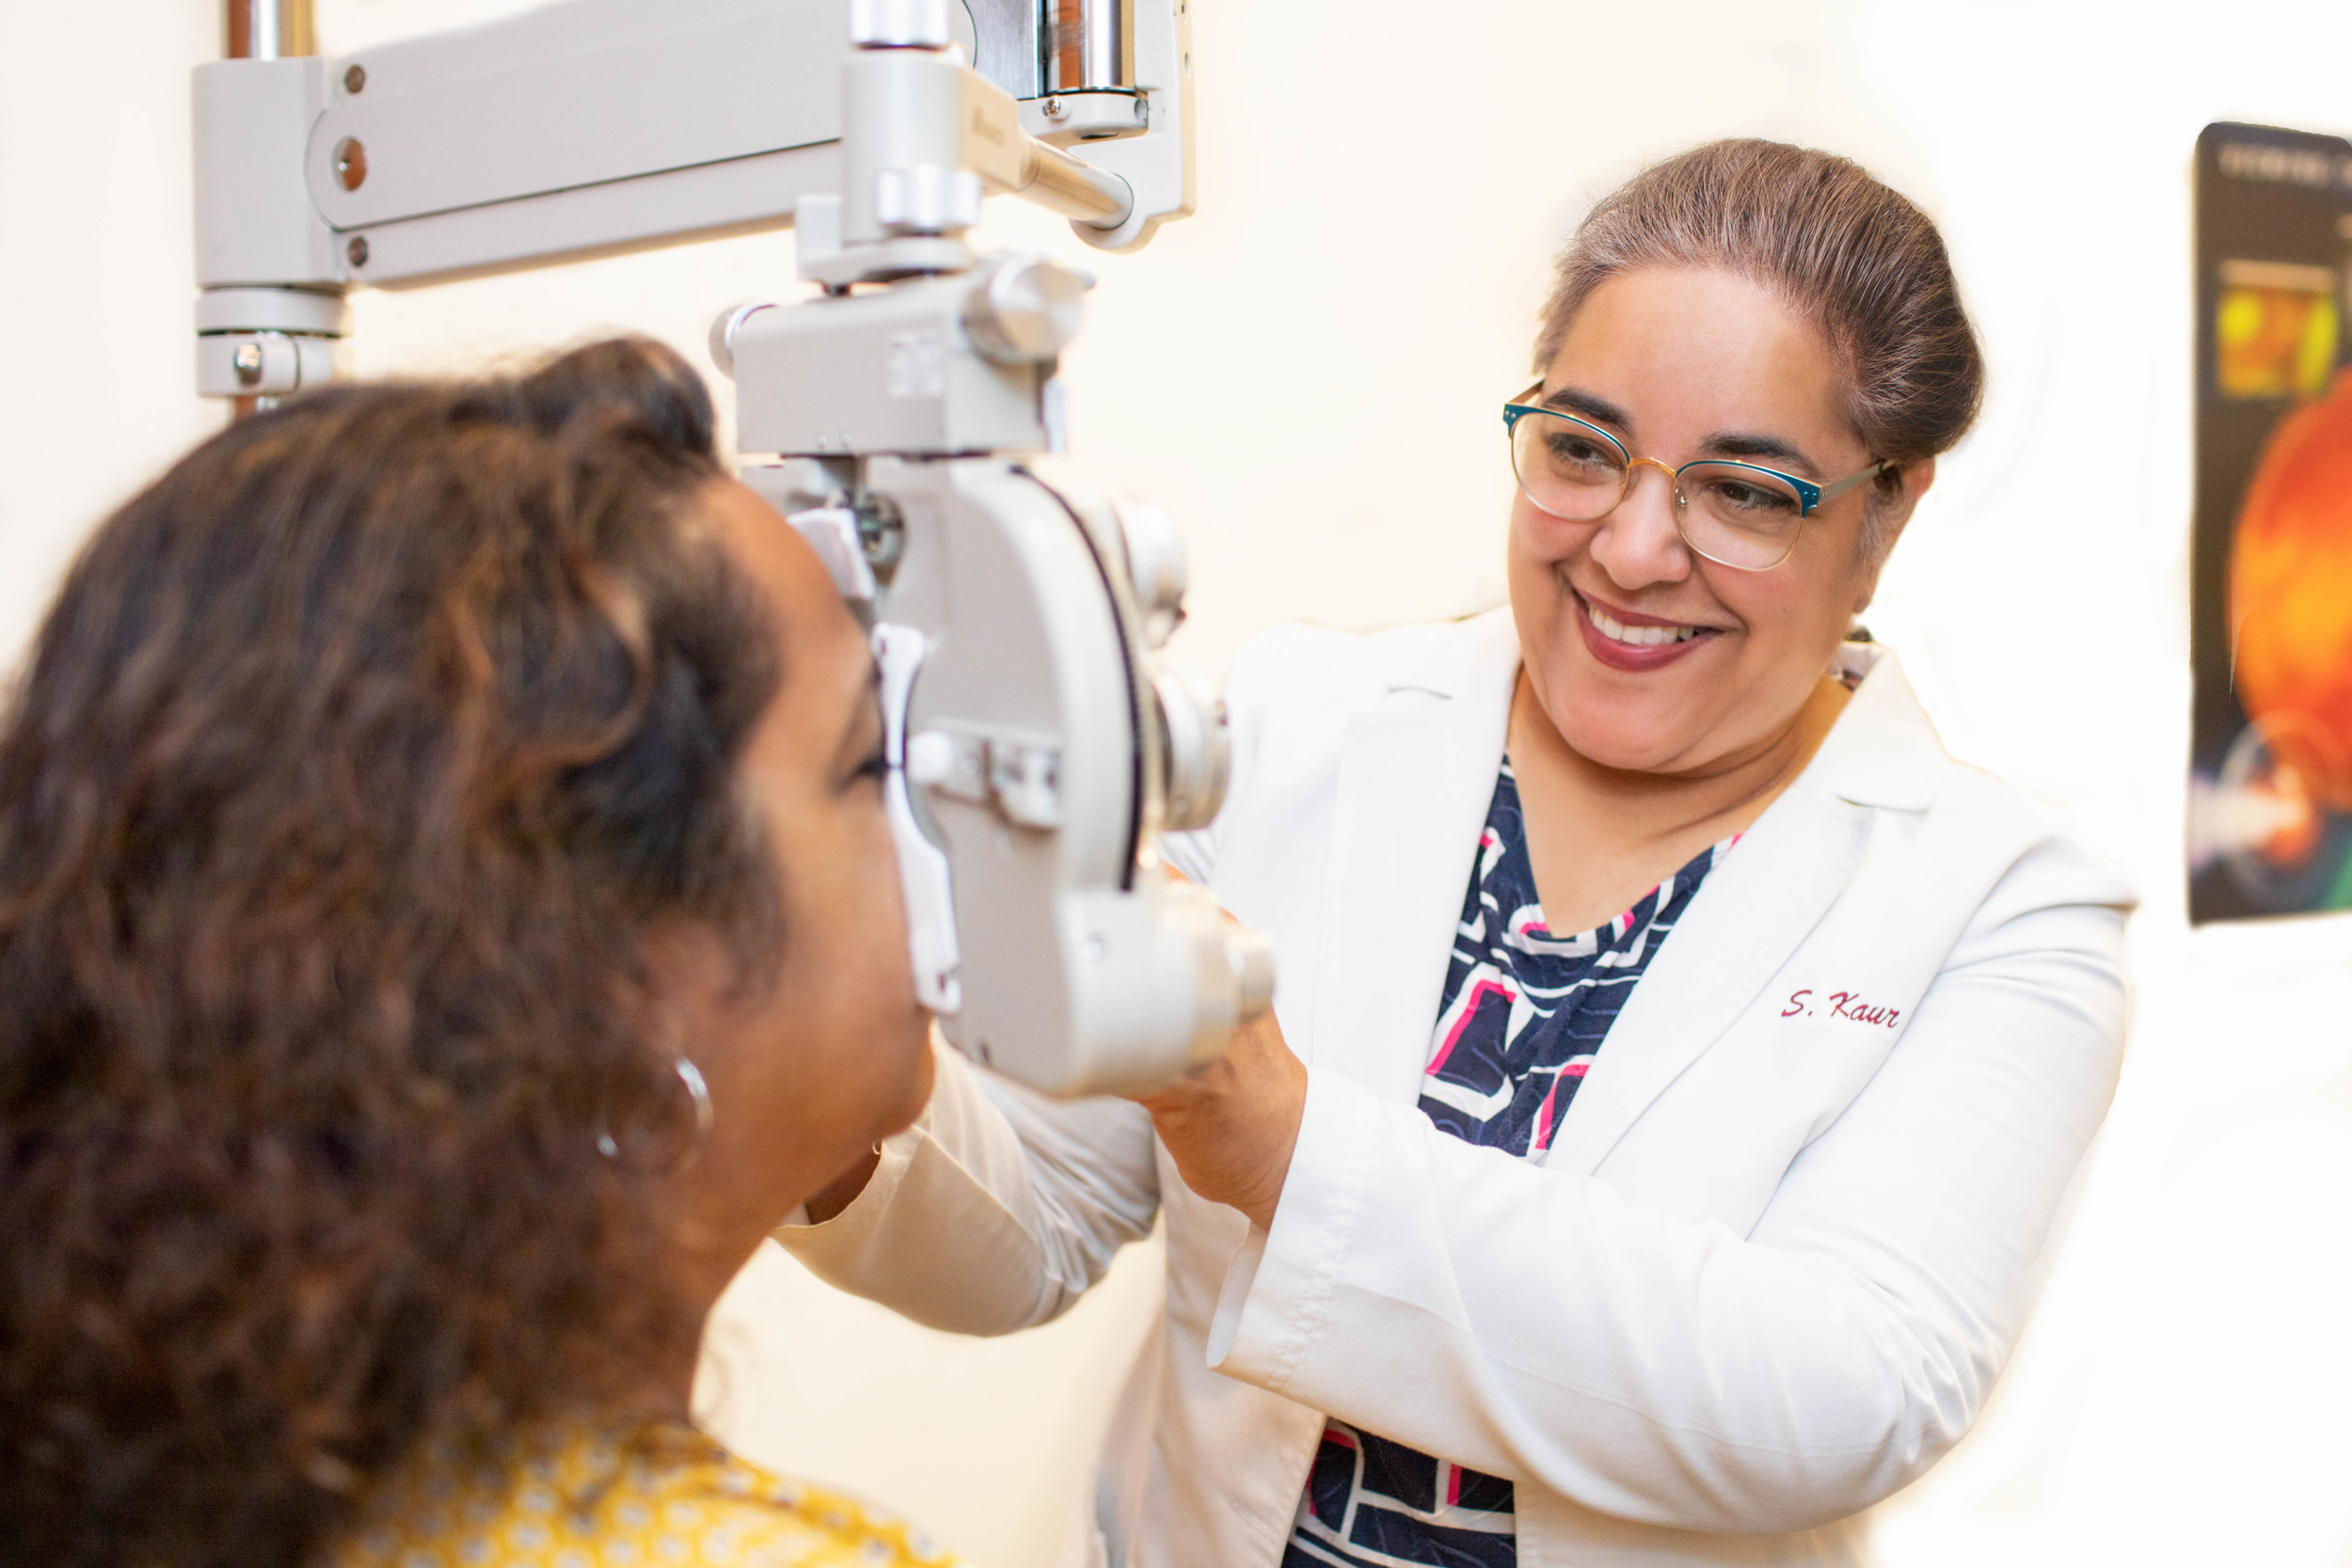 Dr. Kaur uses the    phoropter    to test a patient's vision